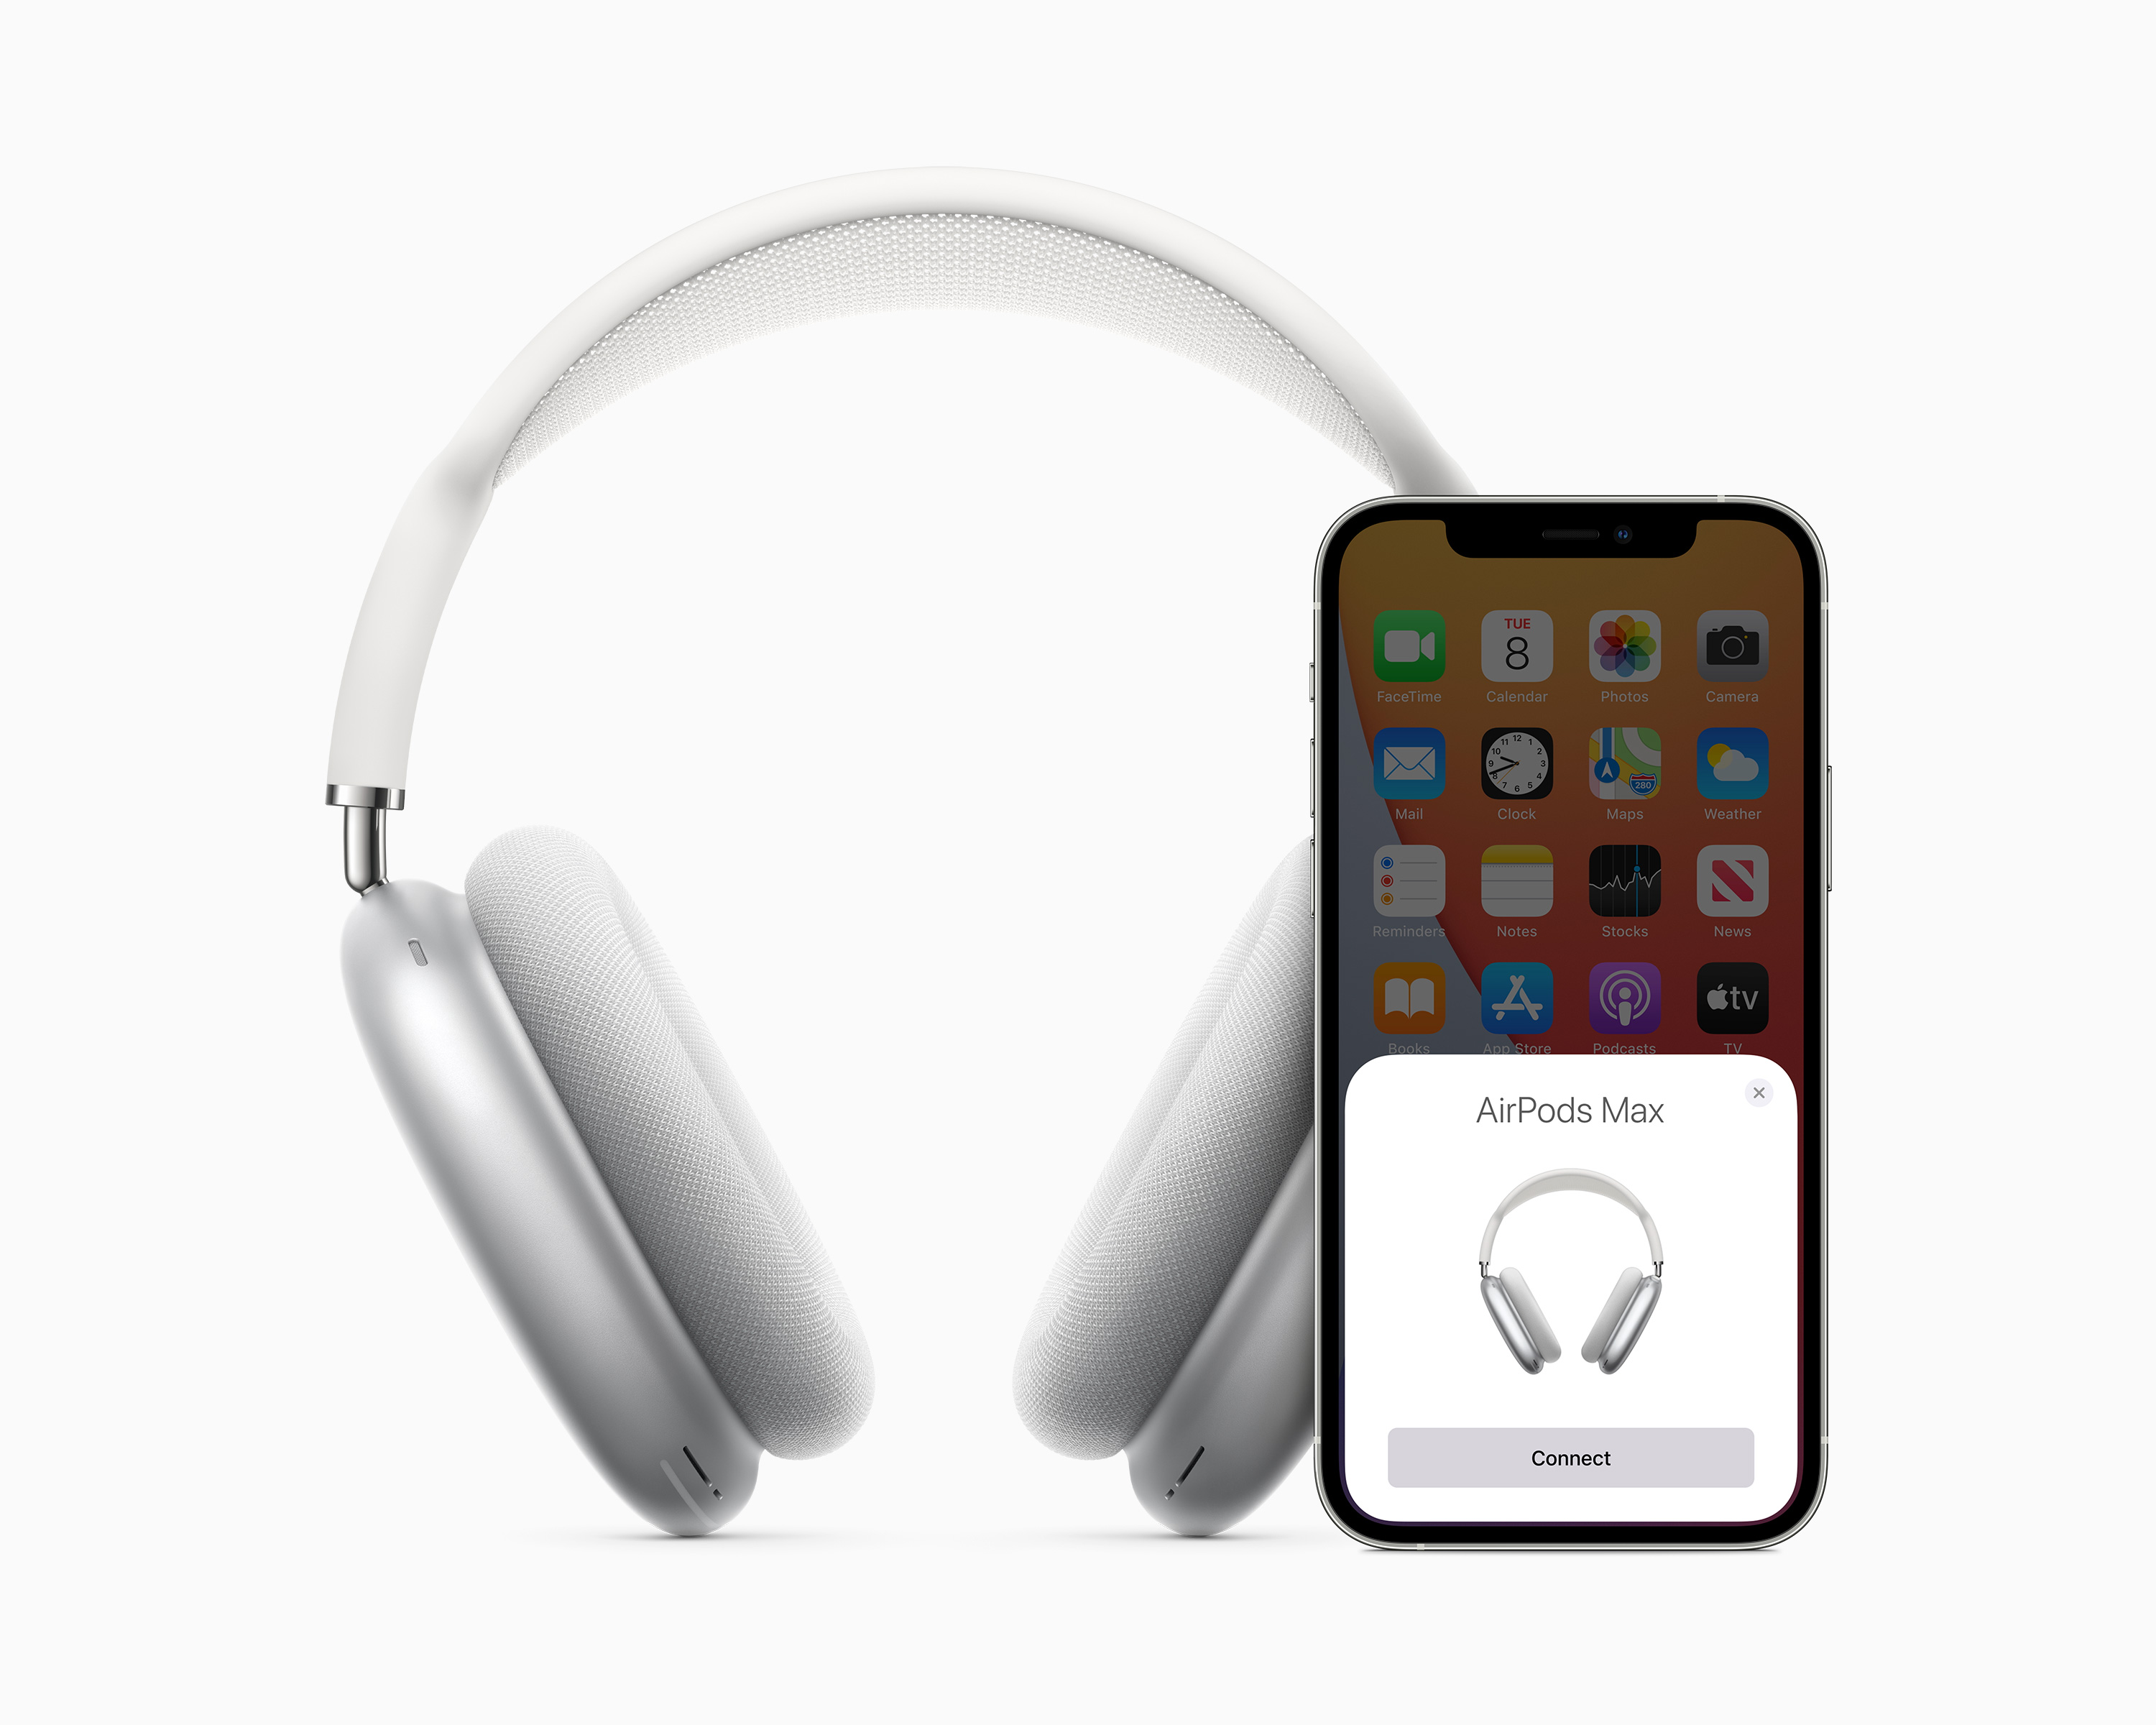 apple_airpods-max_pairing_12082020